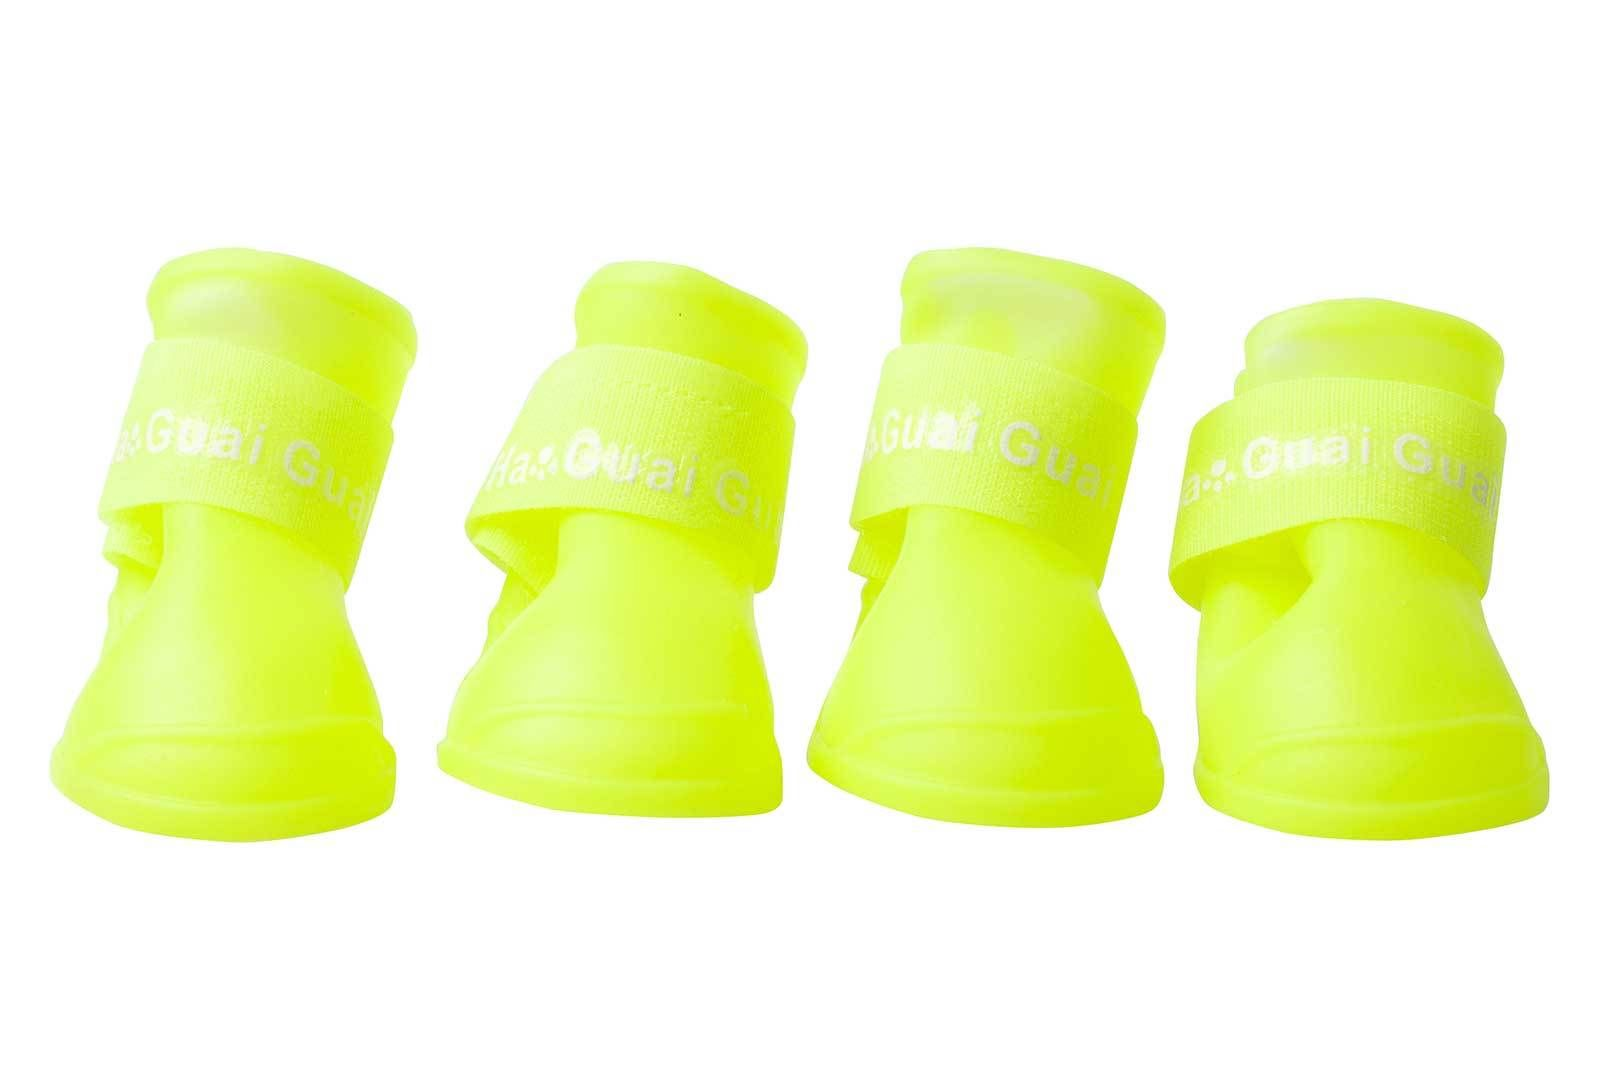 Pet-Dog-Rain-Boots-Booties-Candy-Fashion-Rubber-Waterproof-Shoes-5-Color-S-M-L